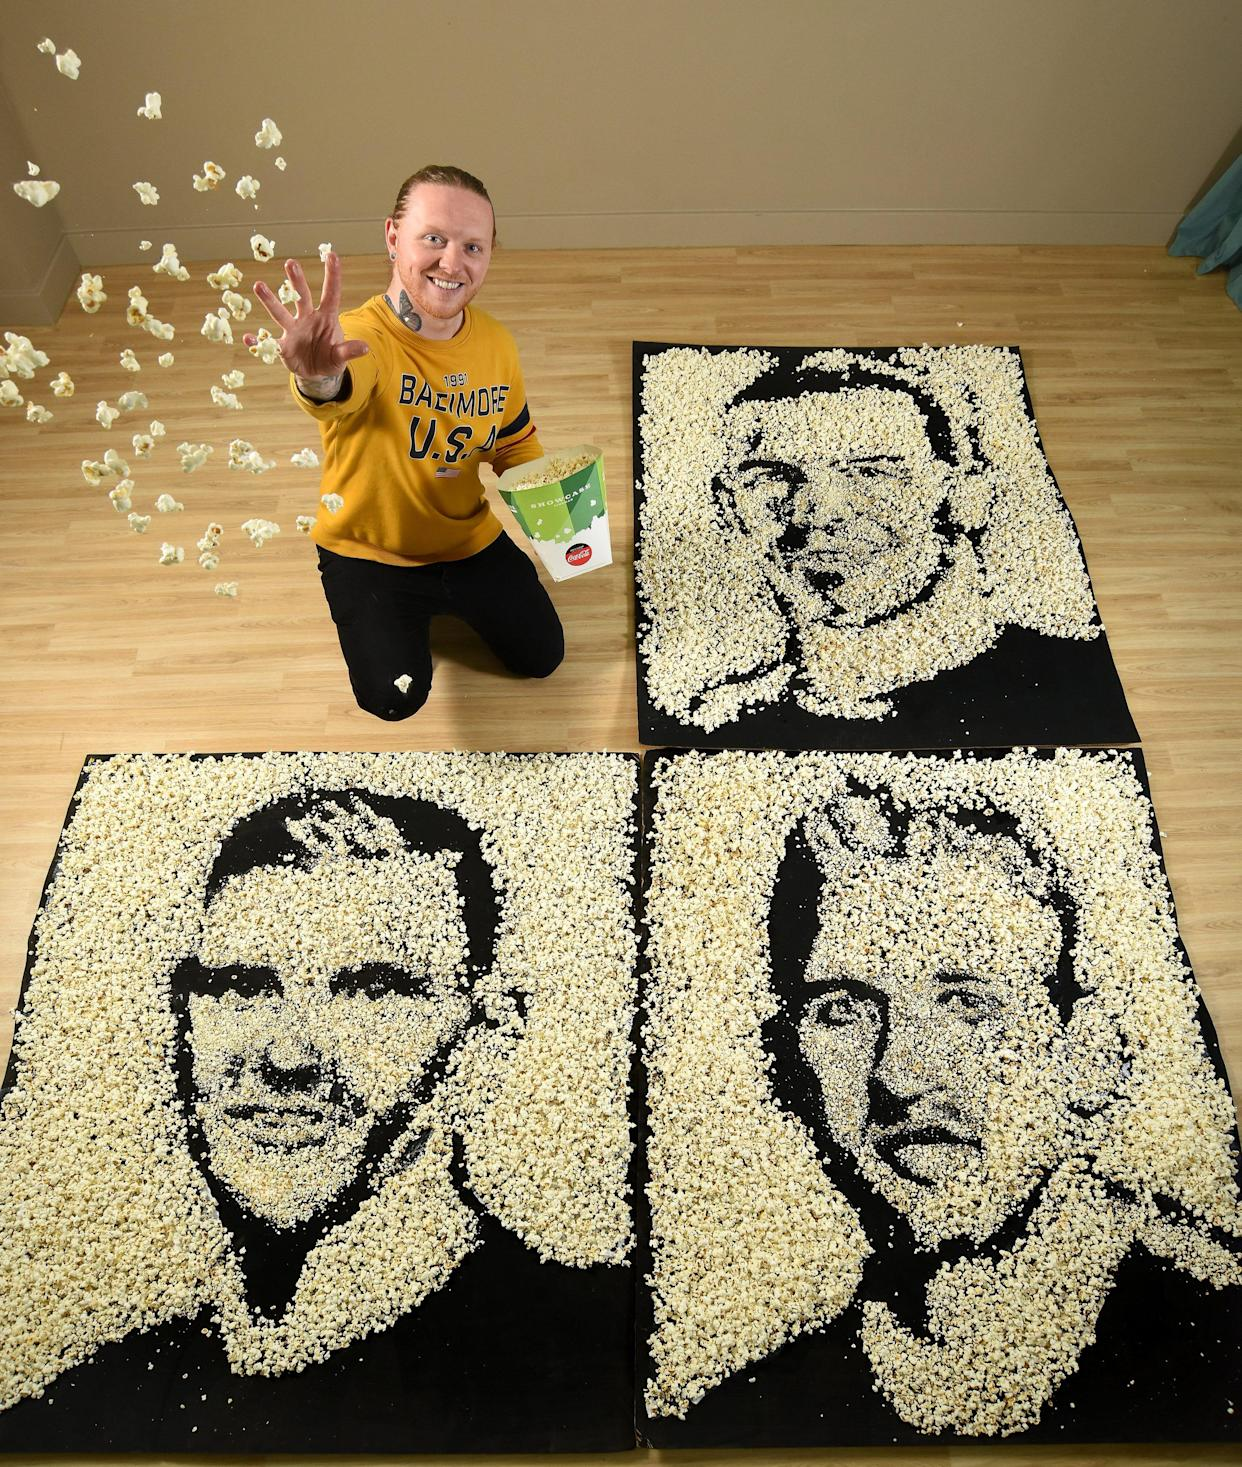 Pictured: To celebrate Showcase will be doing free screenings of the Euros, portraits have been made of the three captains from England, Scotland and Wales.  The footballers are made out of popcorn by artist, Nathan Wyburn.